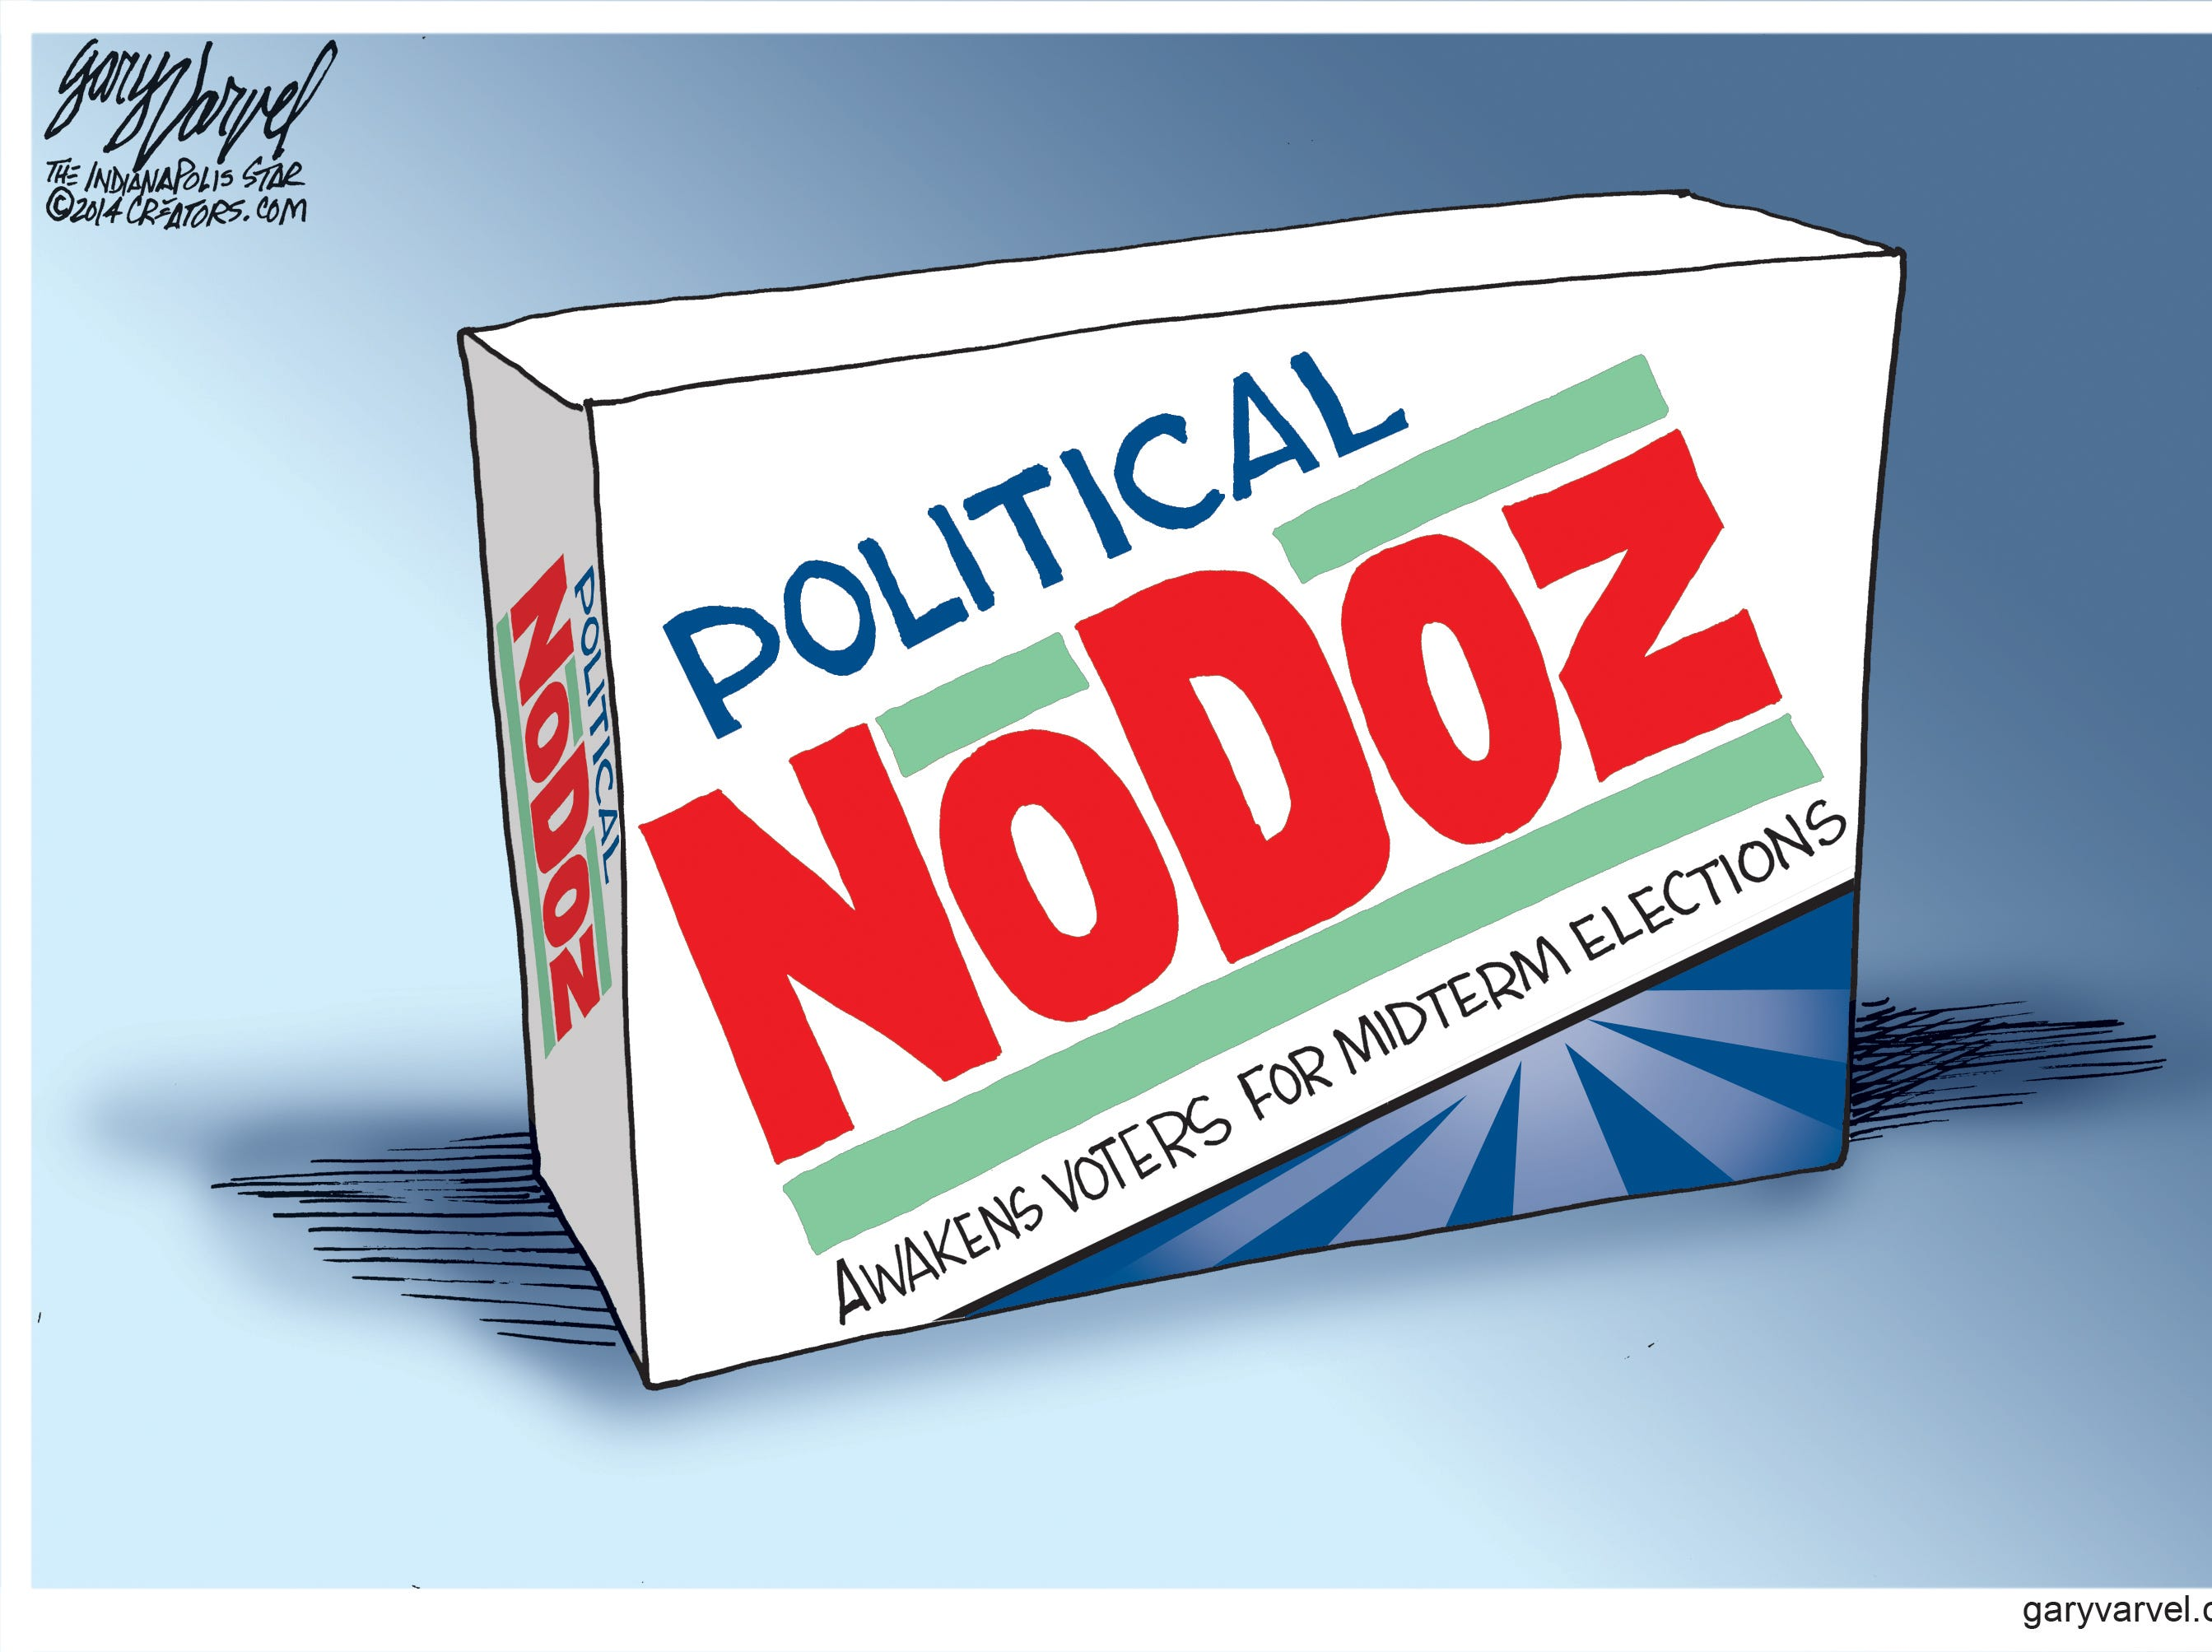 There is usually not much interest in mid-term election.